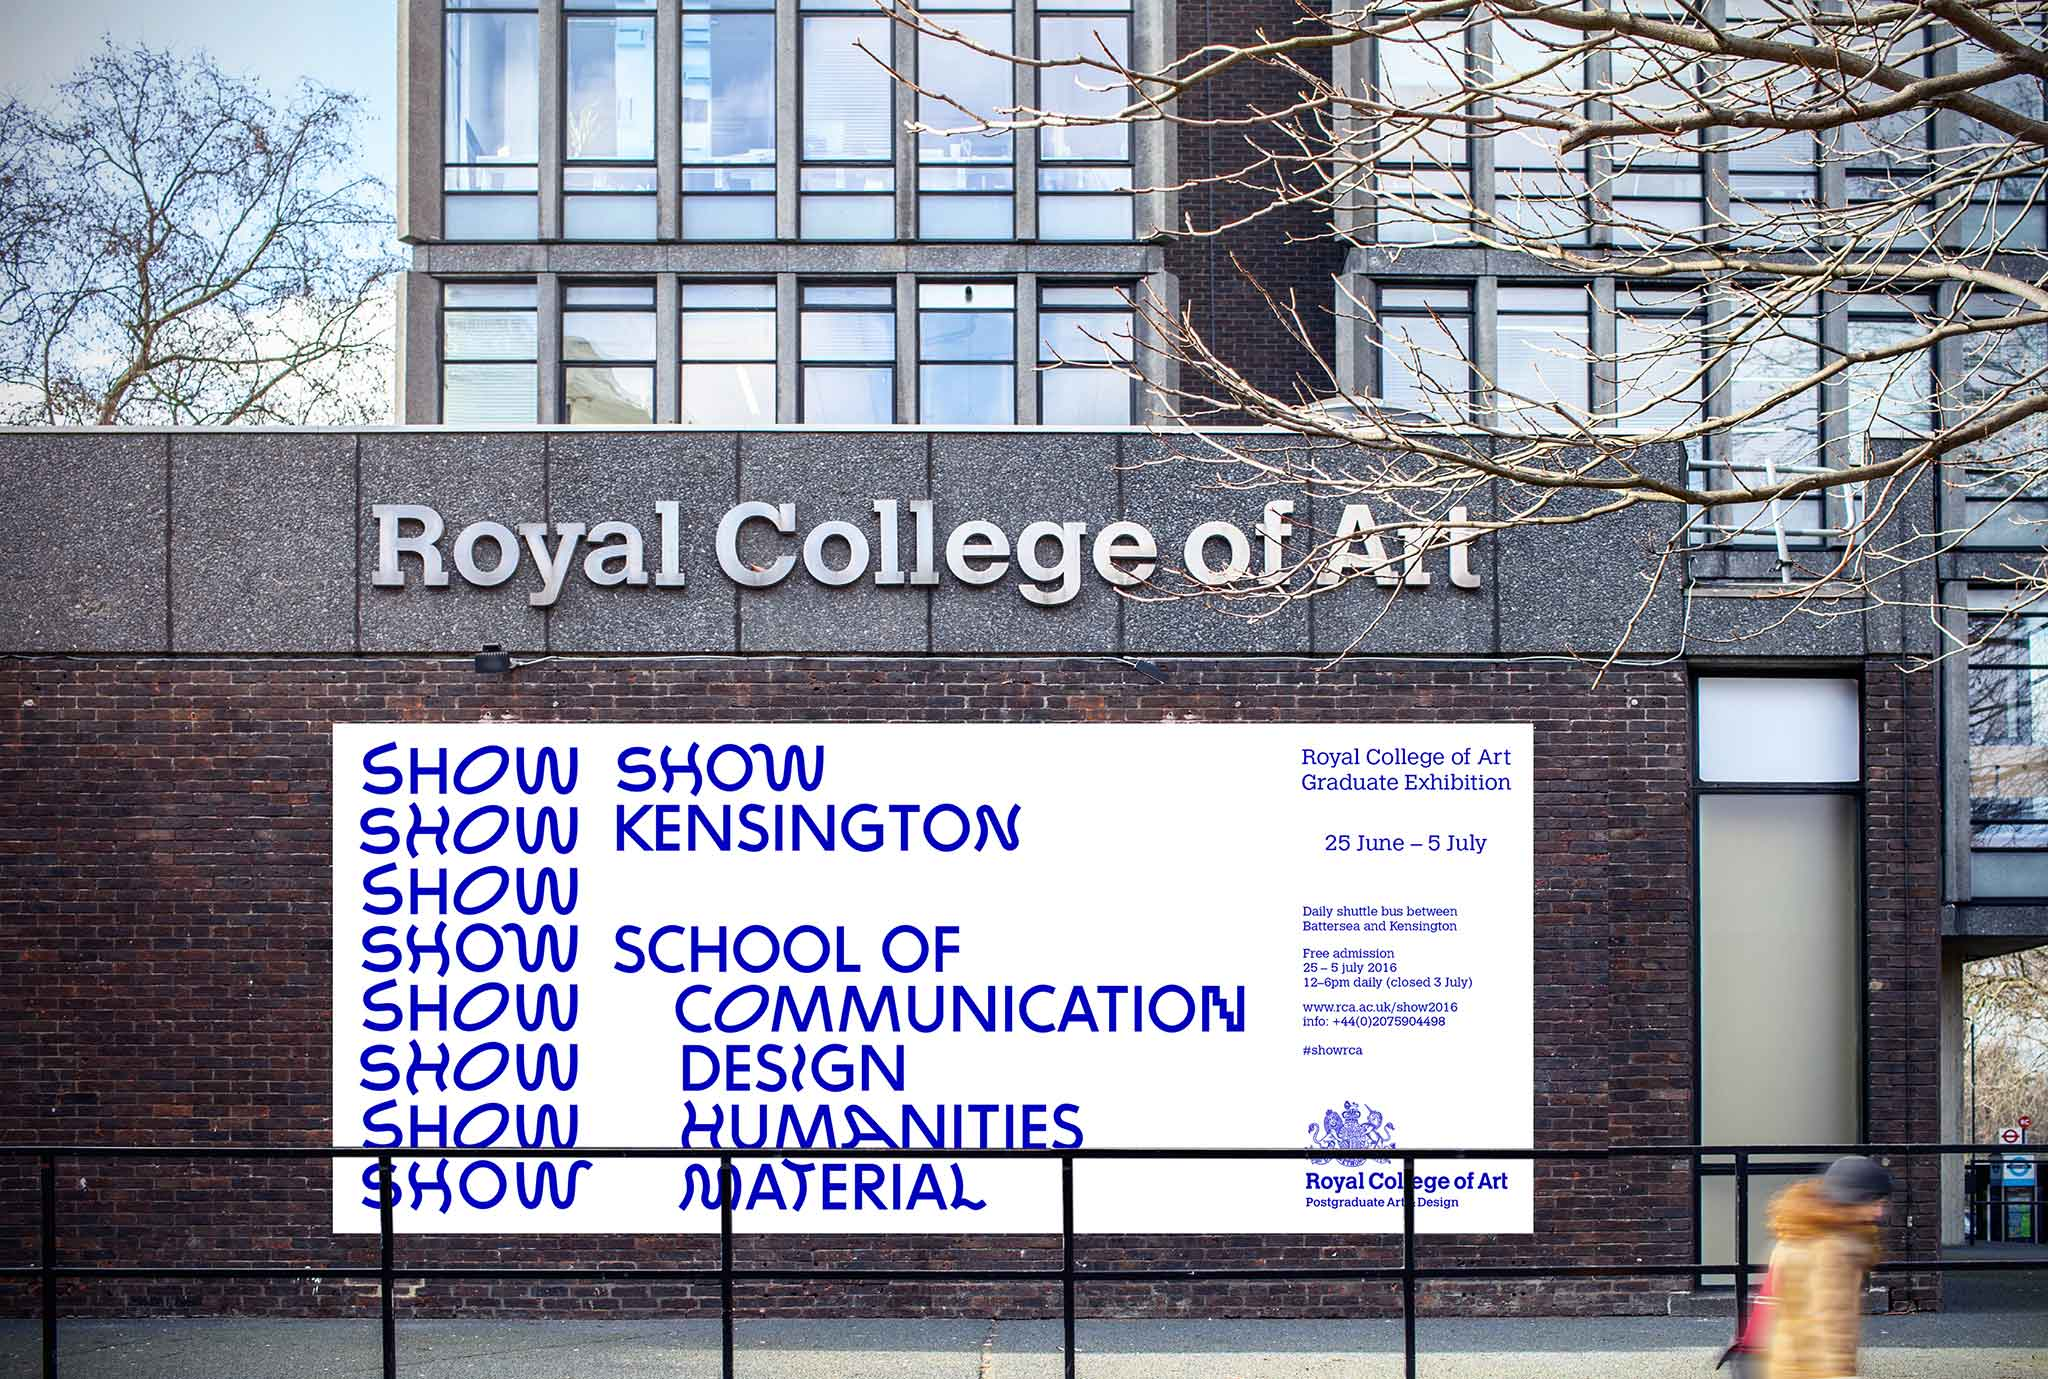 Royal College of Art show 2016 visual identity